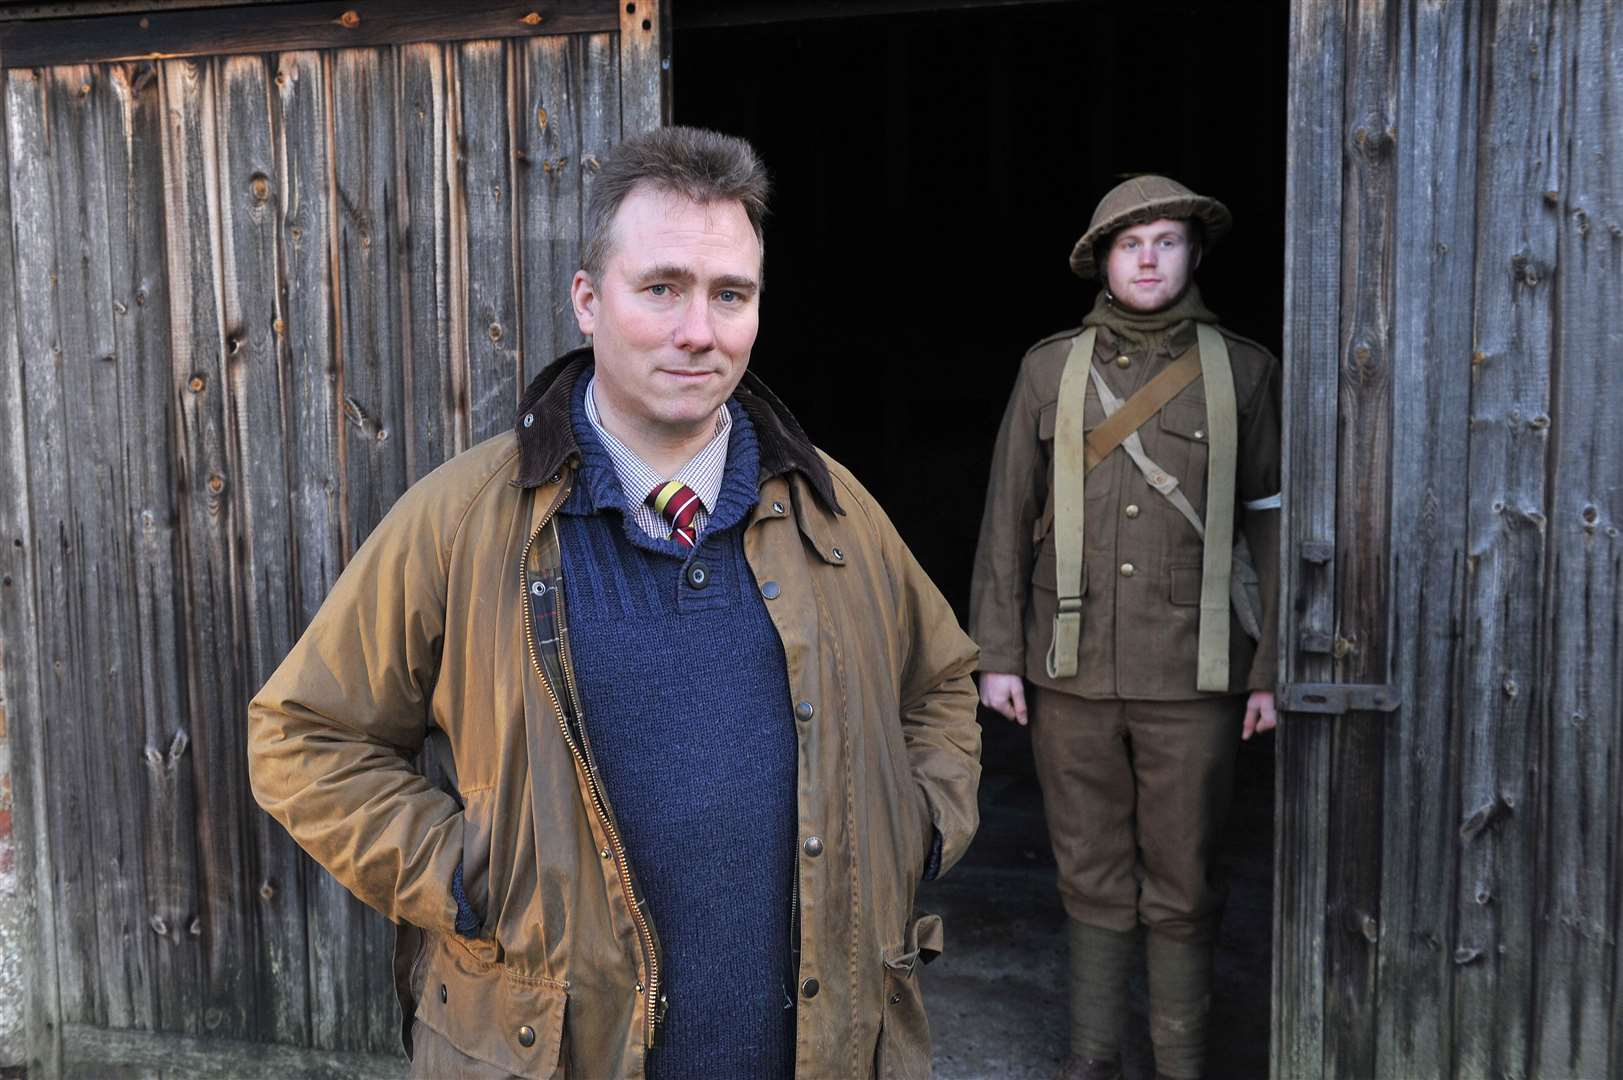 Taff Gillingham and Joe Frost in WW1 clothing. Picture: Mecha Morton